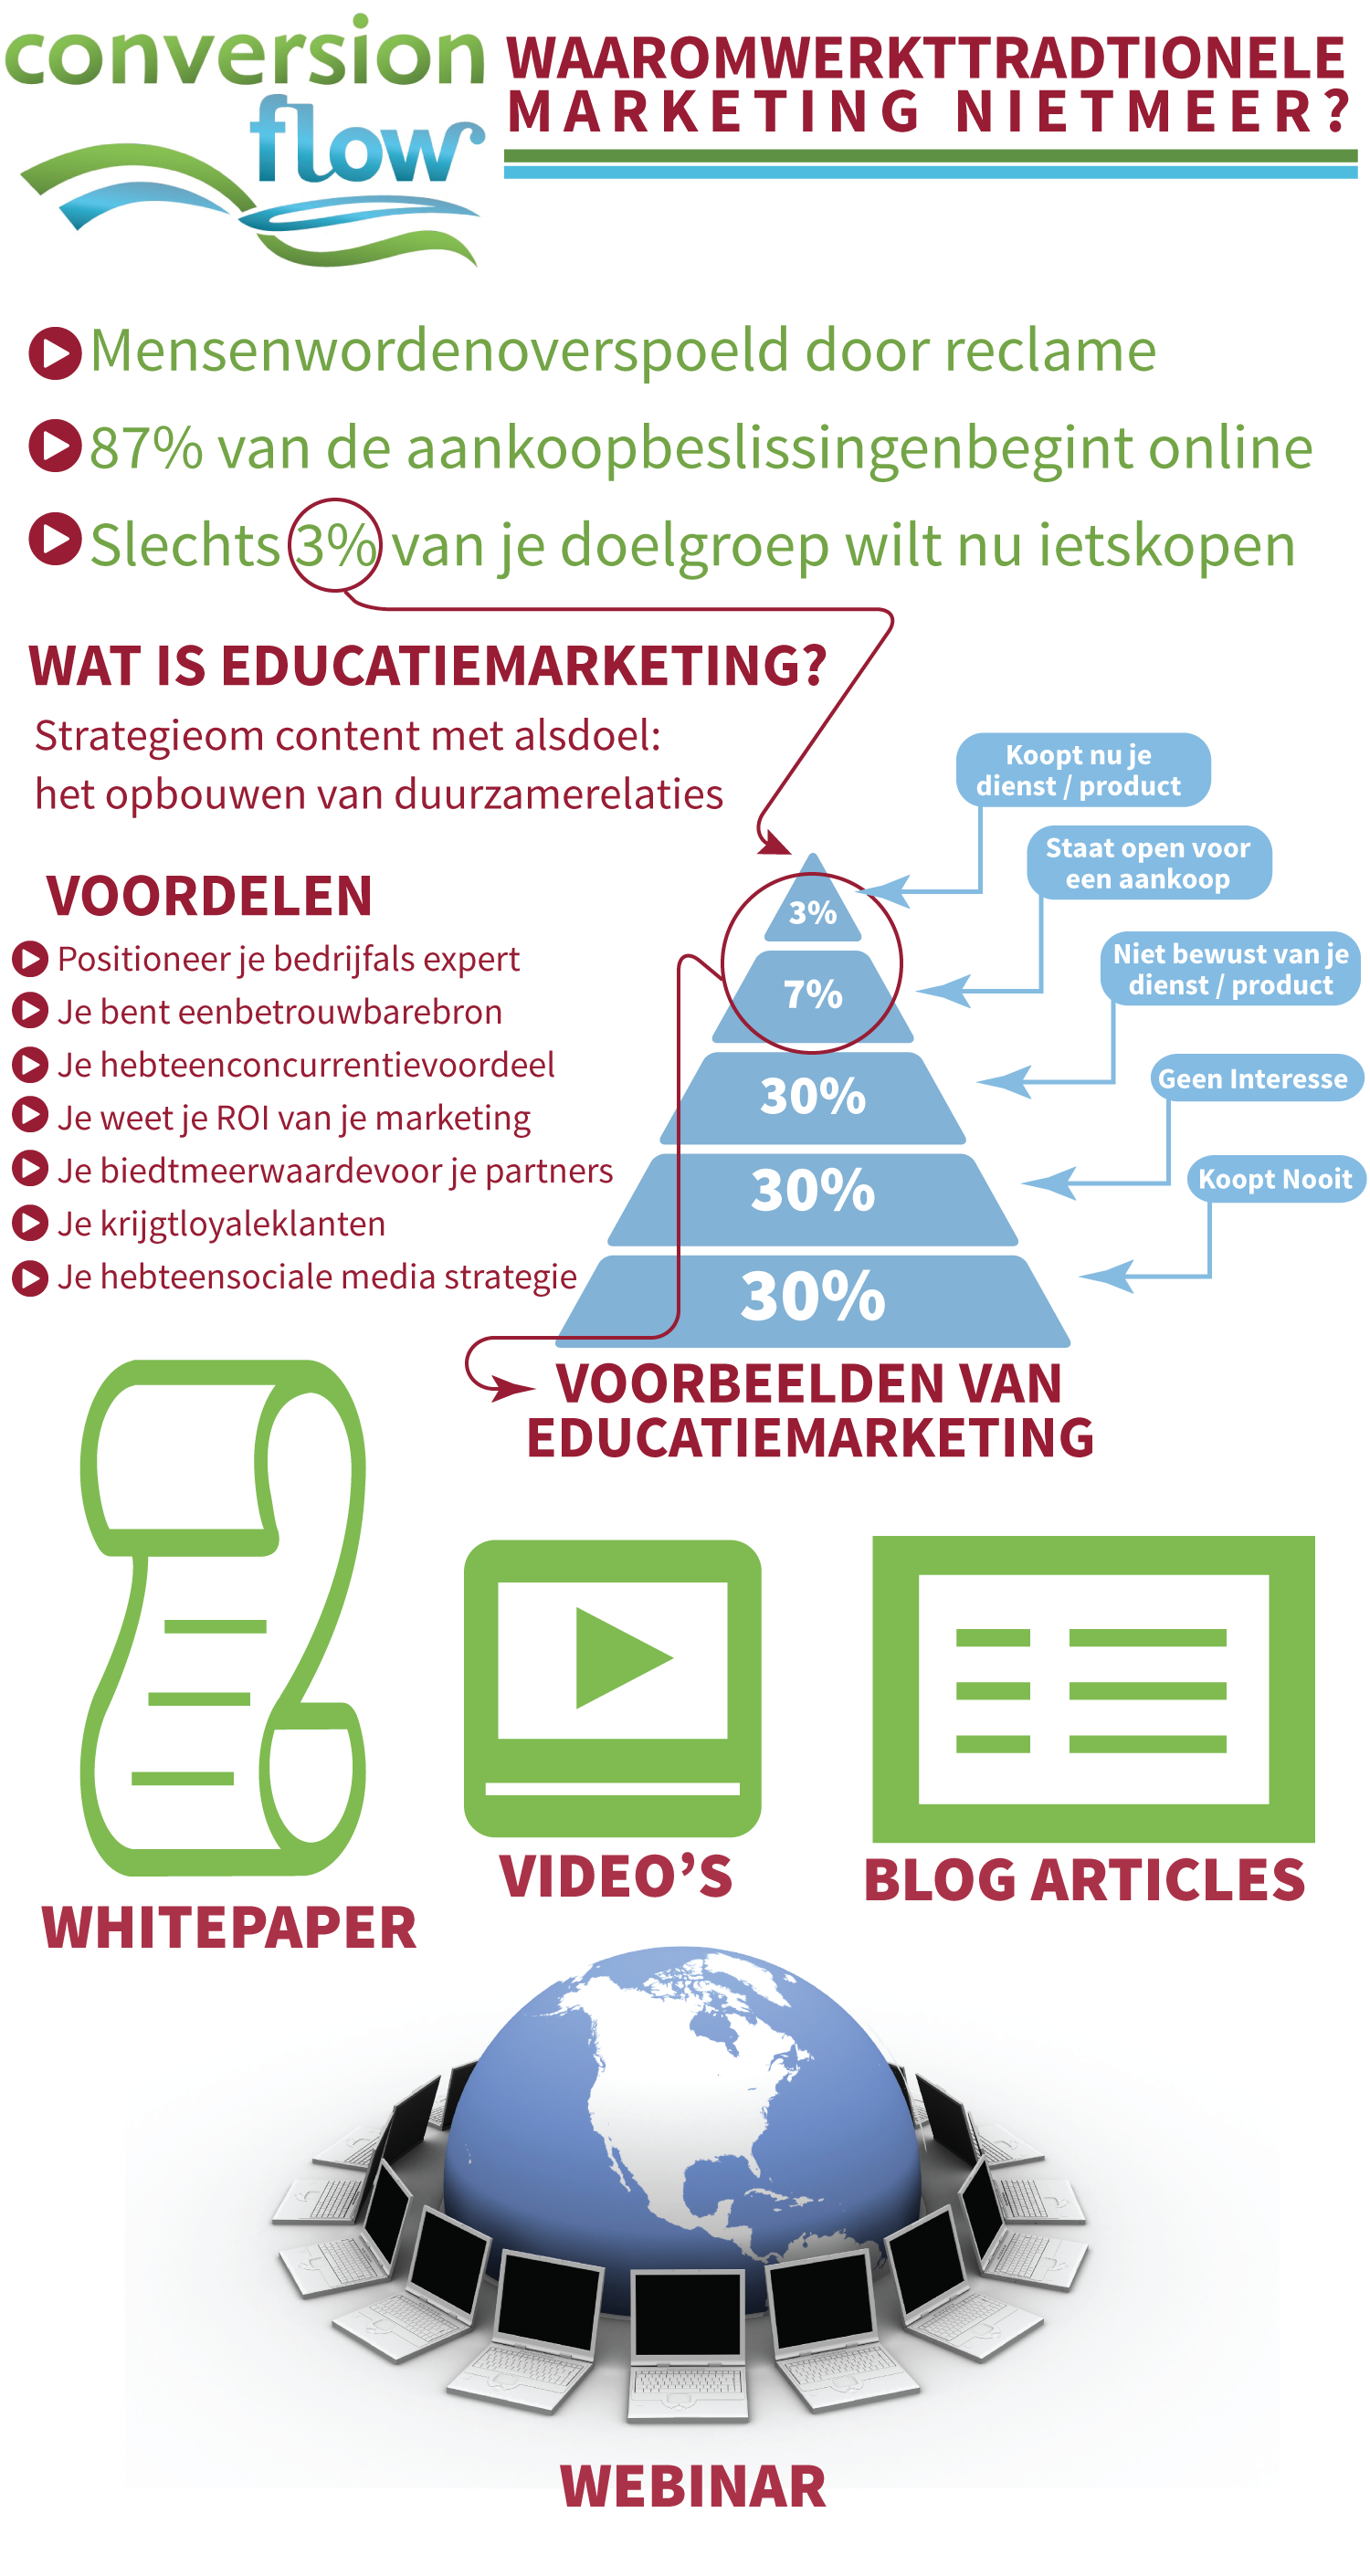 Waaromwerkttradtionele Marketing Nietmeer? Infographic